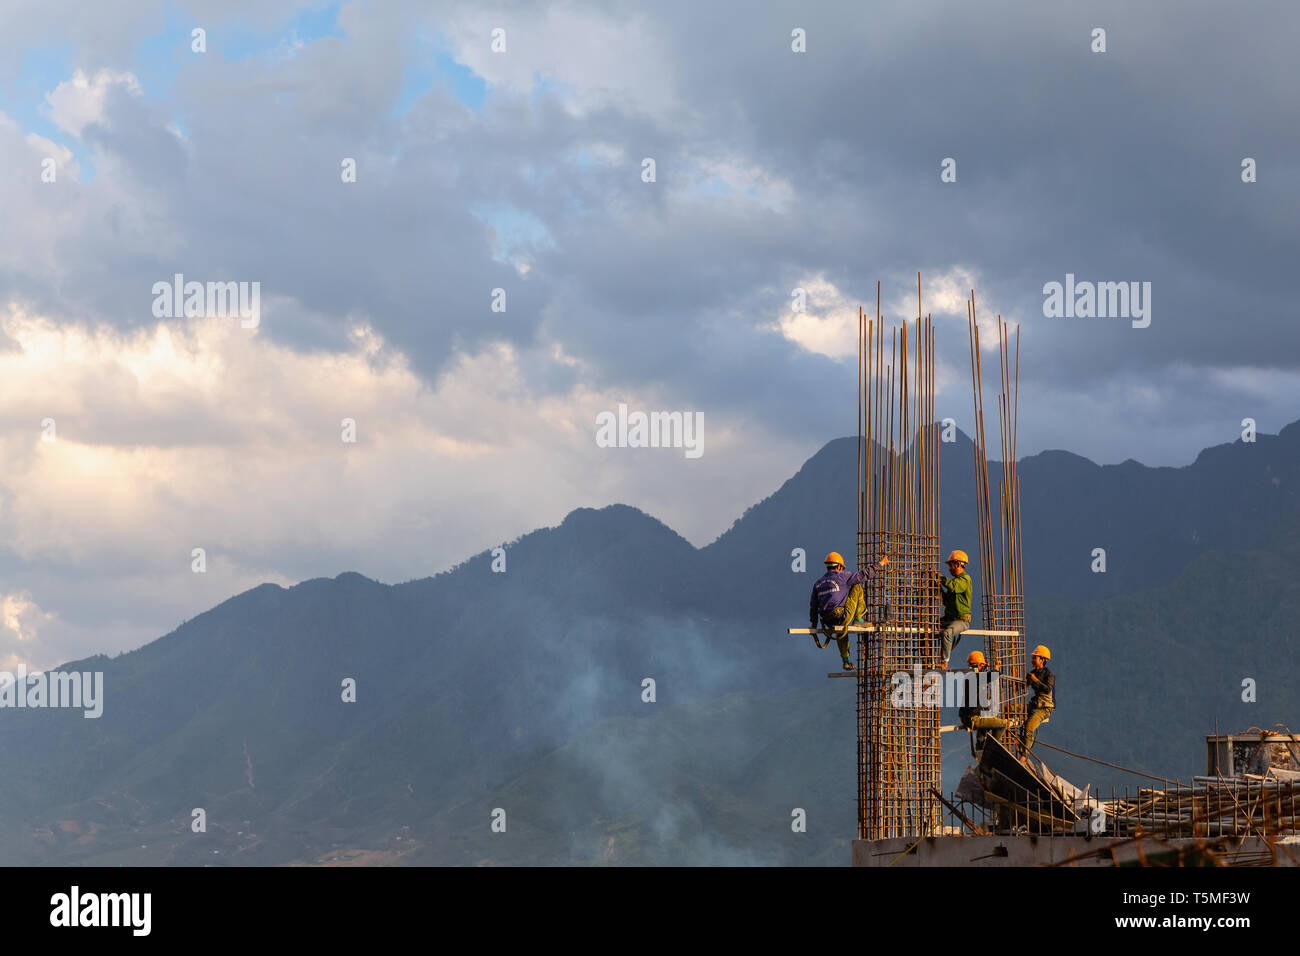 Construction workers climbing and building a high-rise development in SaPa Vietnam, Asia - Stock Image